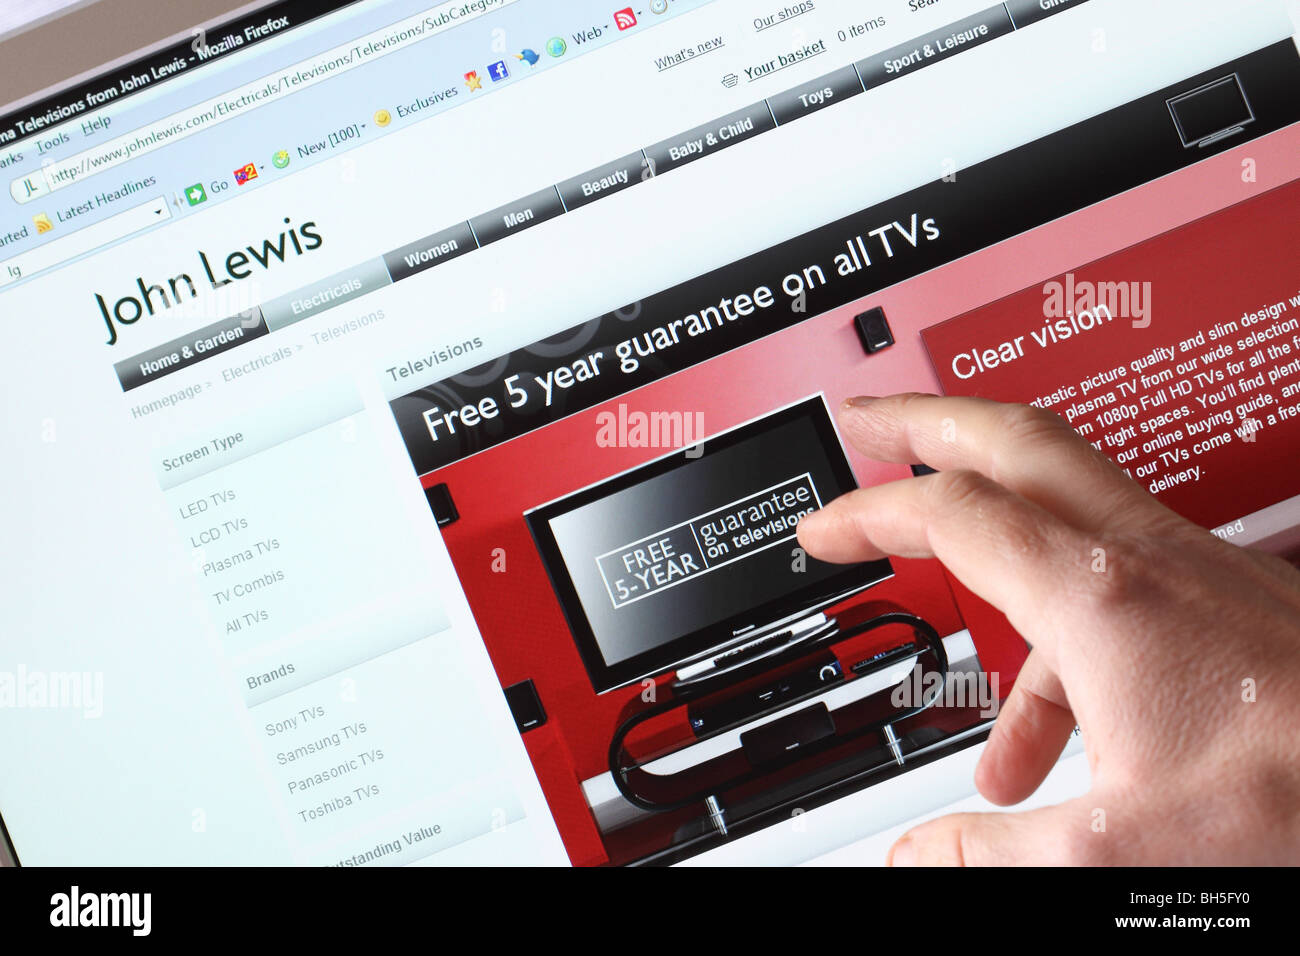 john lewis department store online shopping website web page stock